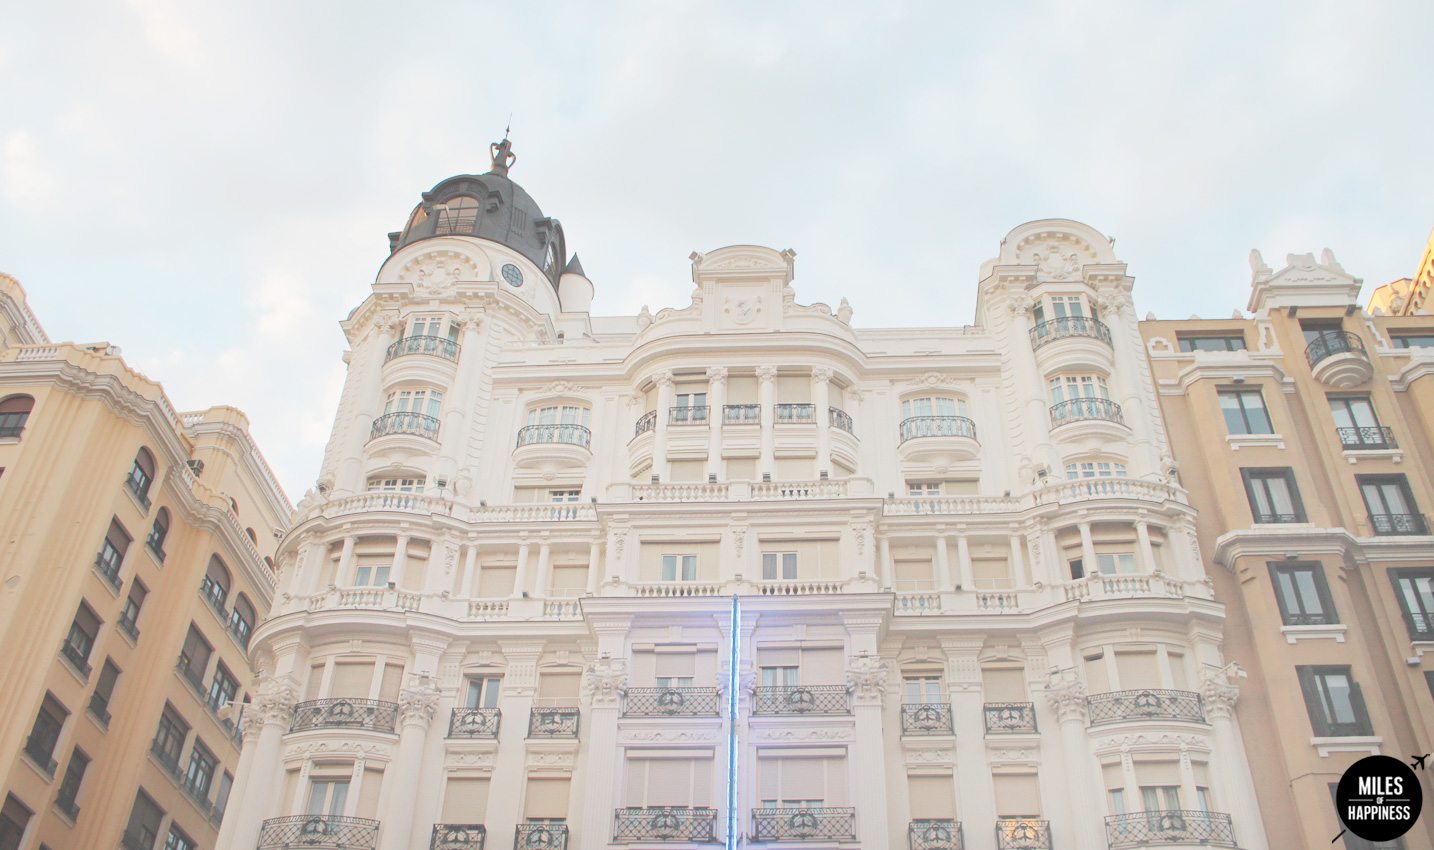 discover spain - madrid & more destinations to come !